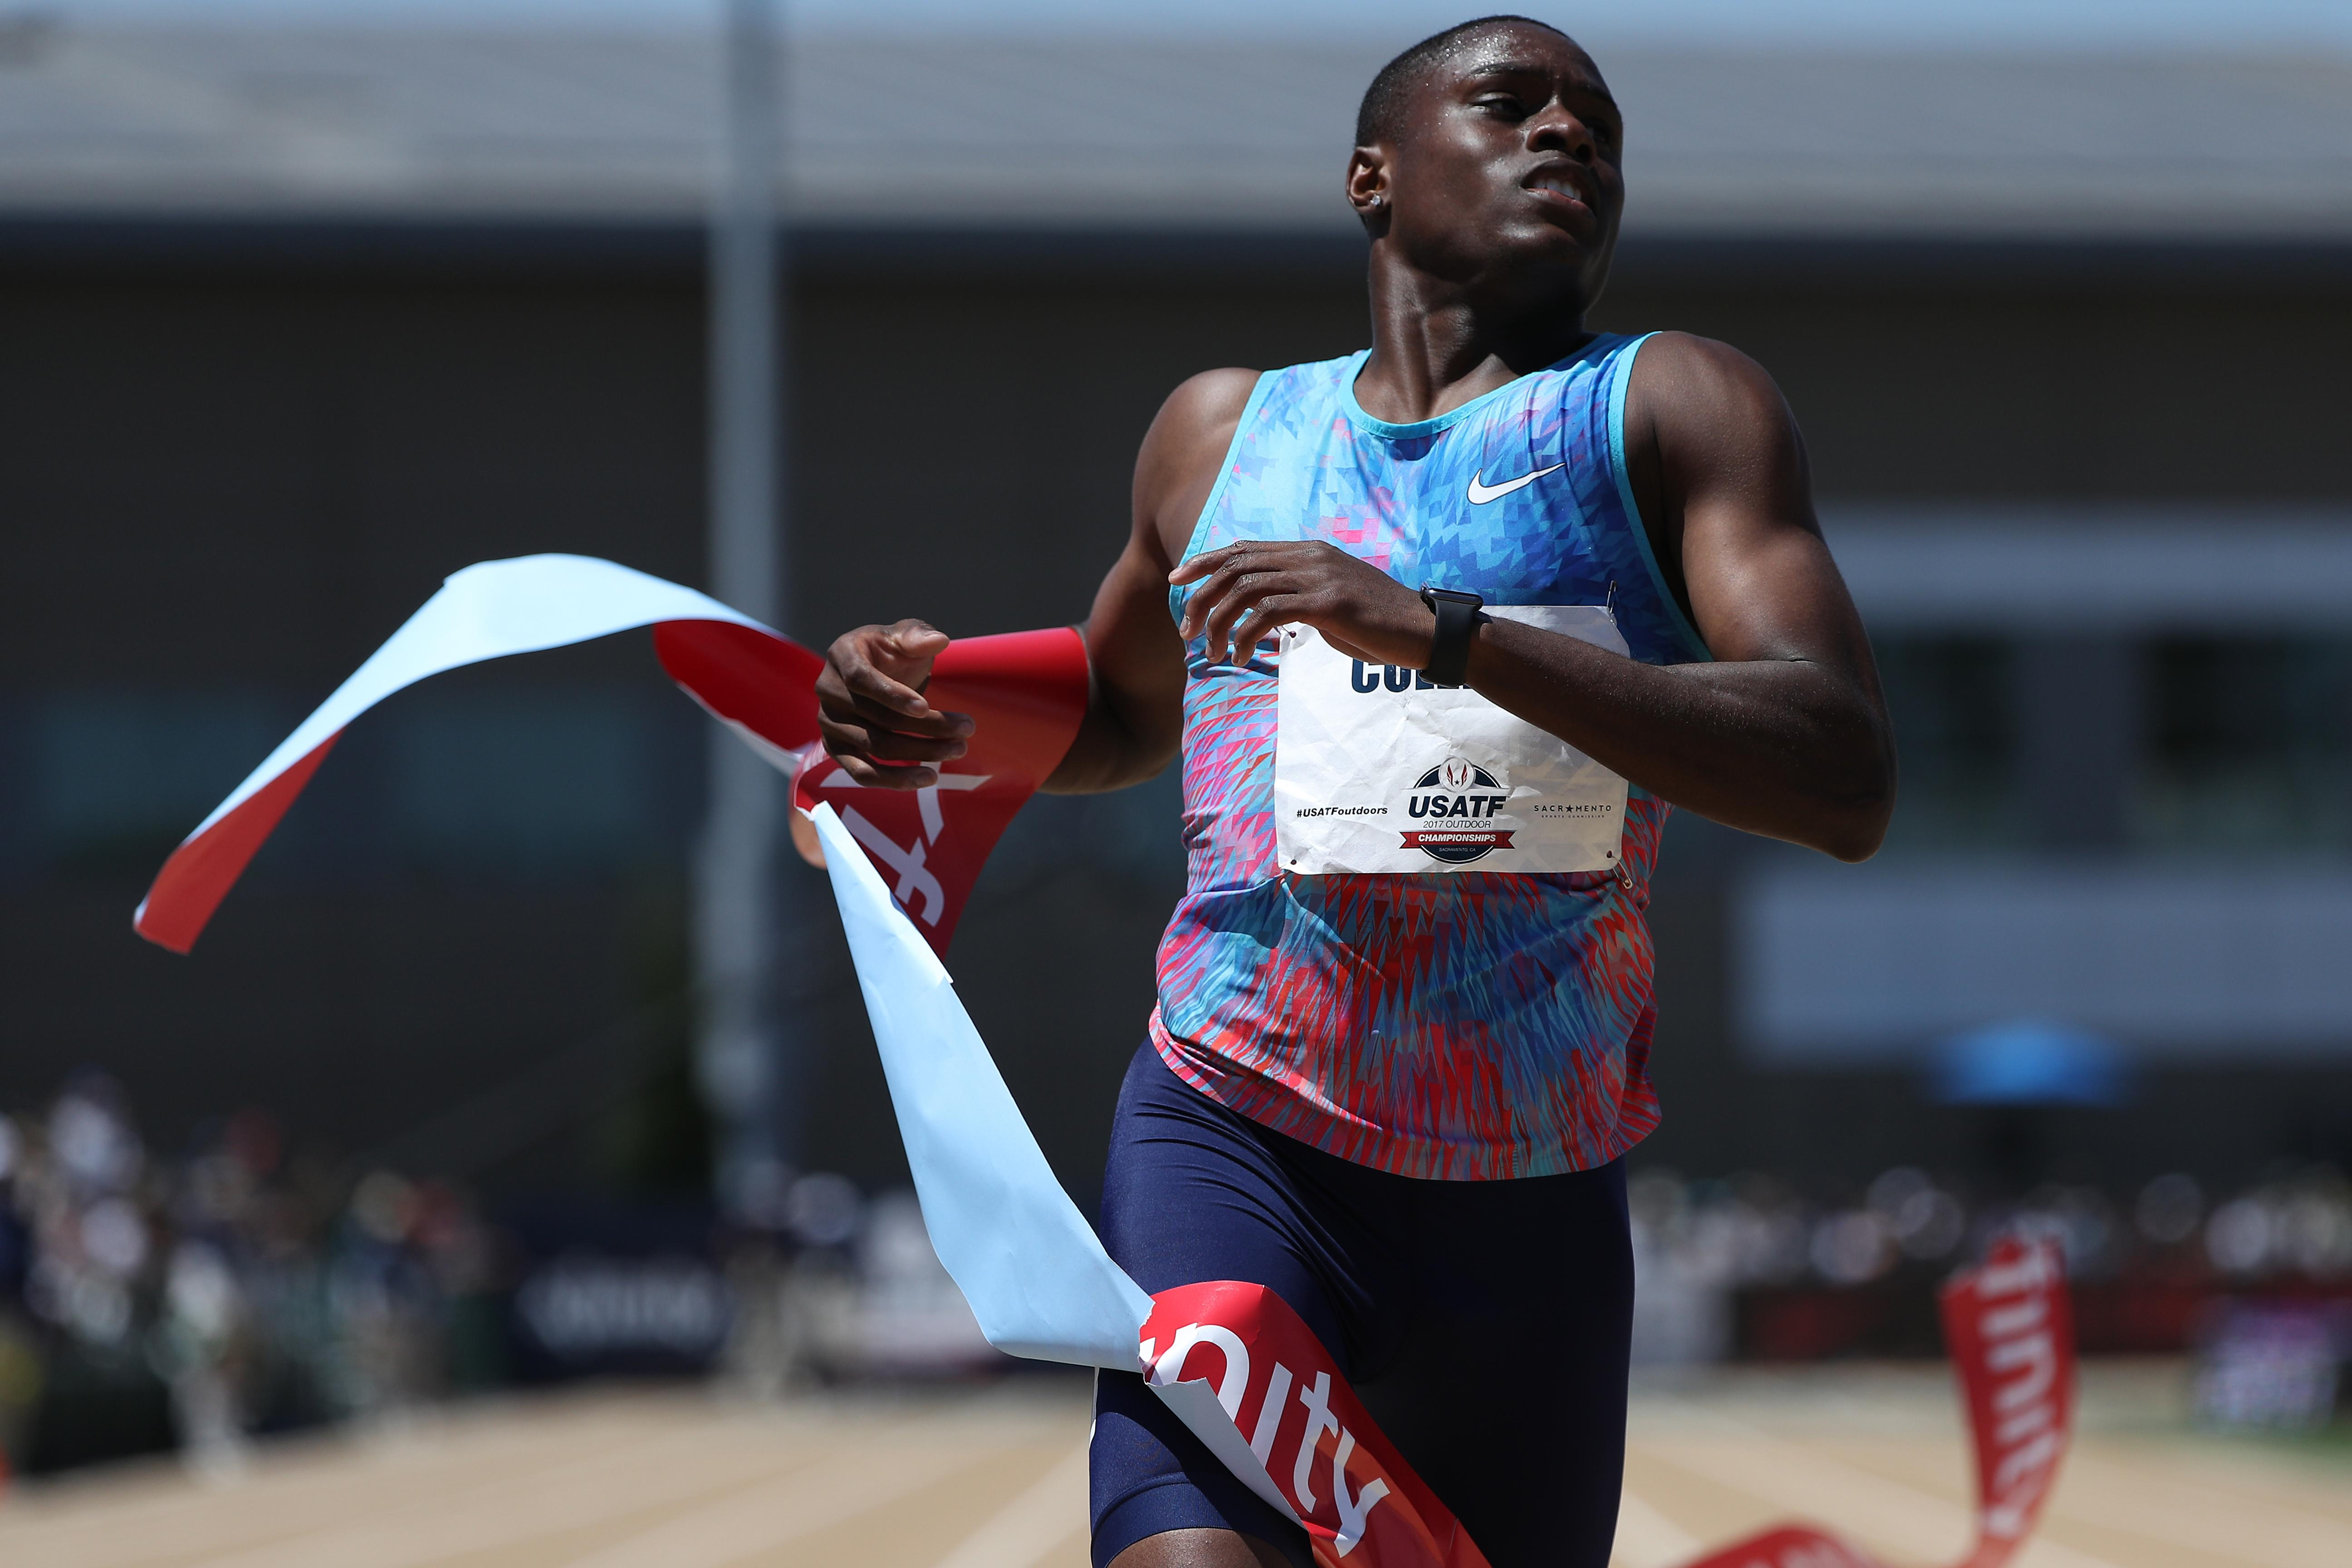 Report: Christian Coleman, world's fastest 100m sprinter, could face doping ban ahead of Olympics